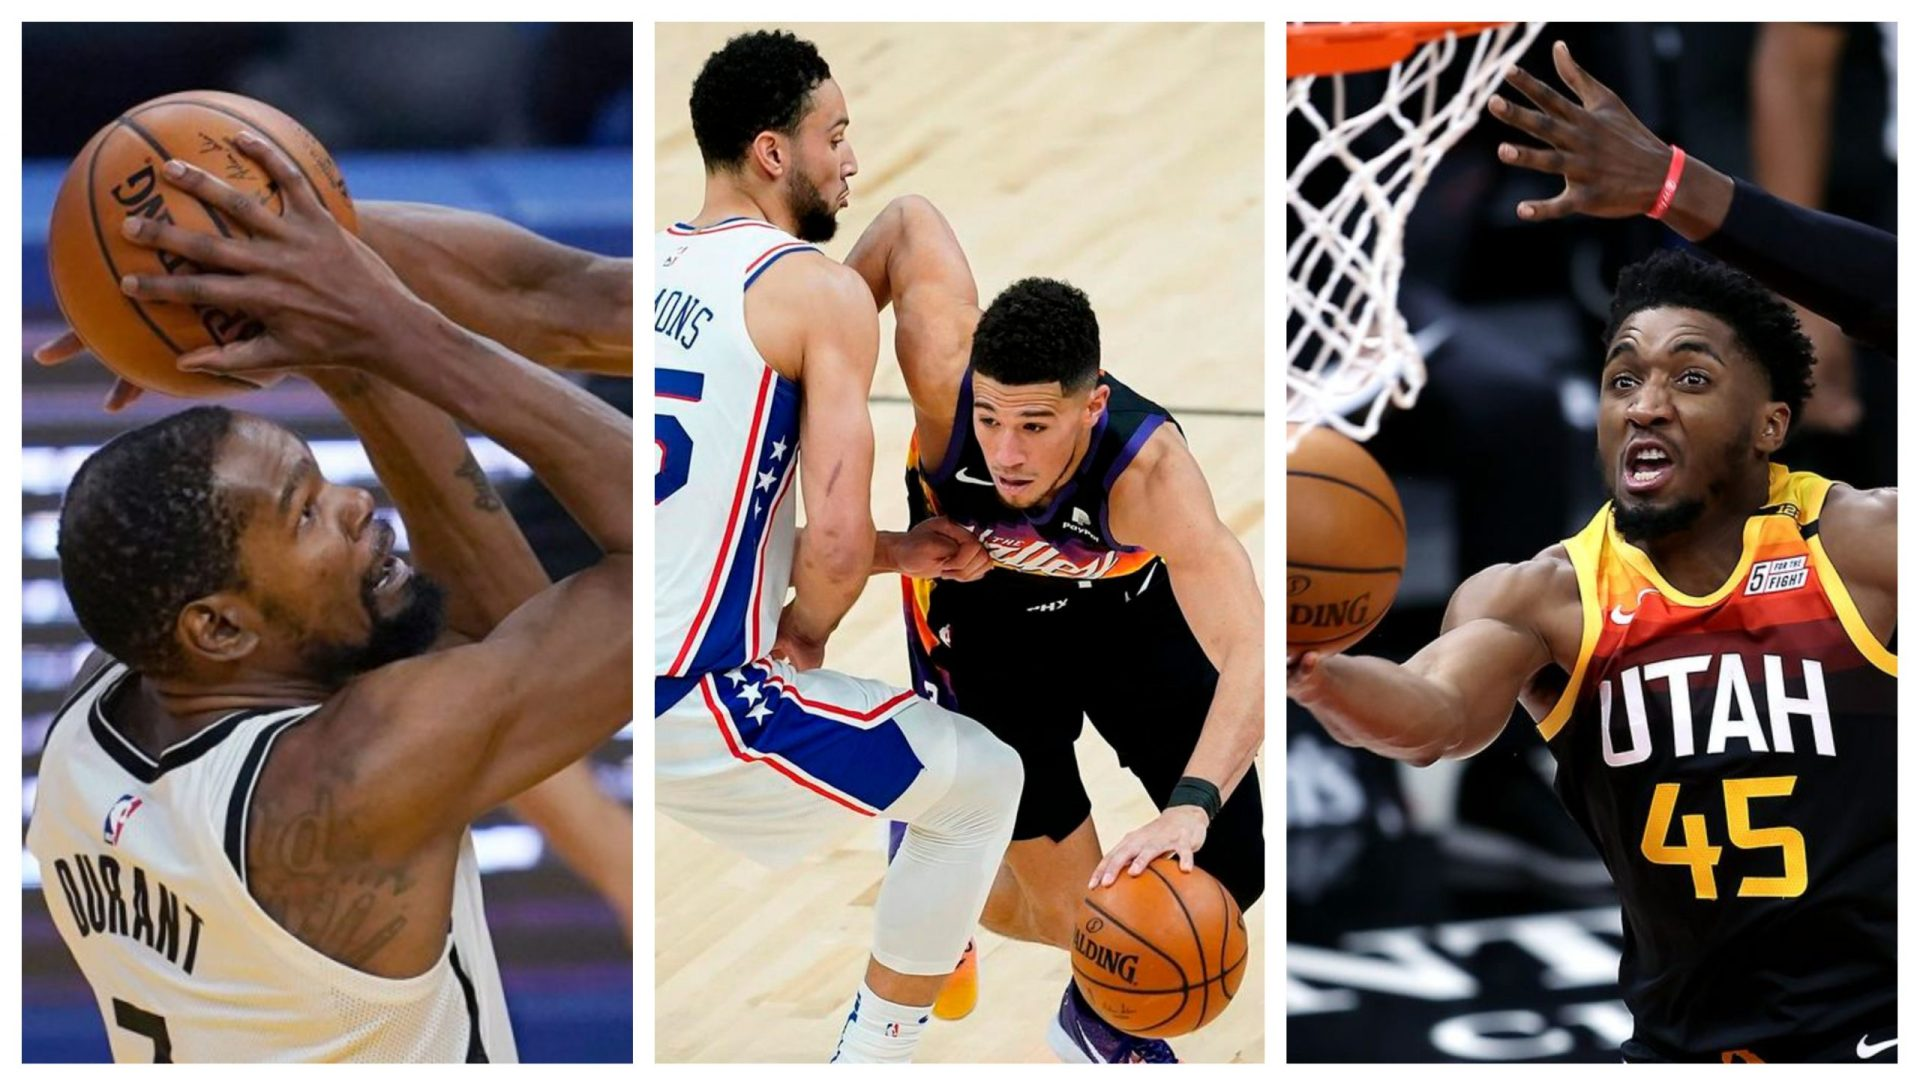 NBA Week 8 Feb 13 results: Scores, standings, match summary and highlights - THE SPORTS ROOM